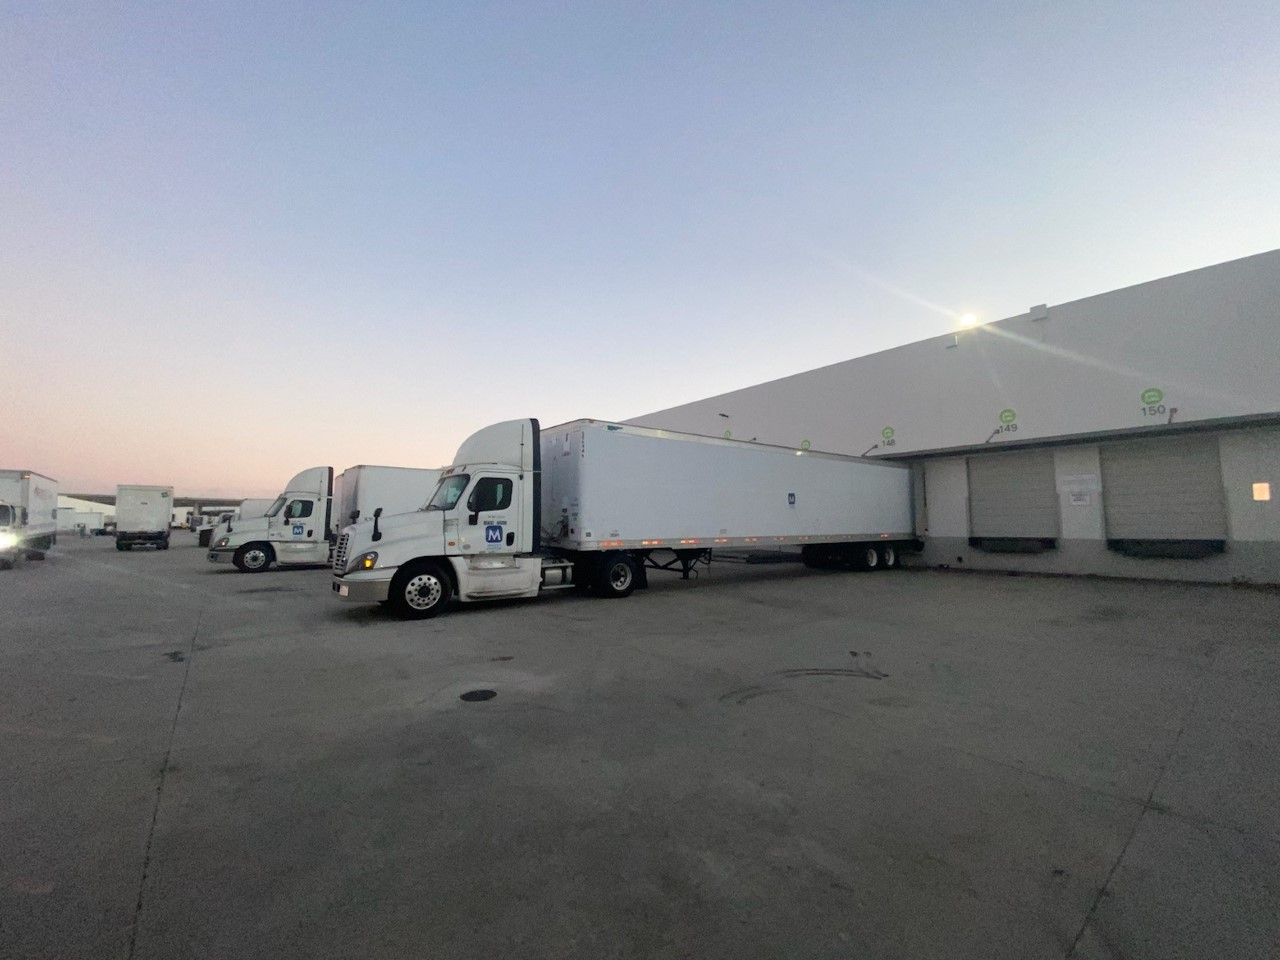 Menzies Aviation, the global aviation logistics specialist, has expanded its cargo facilities by 40% at Los Angeles Airport (LAX) with the addition of a new warehouse.